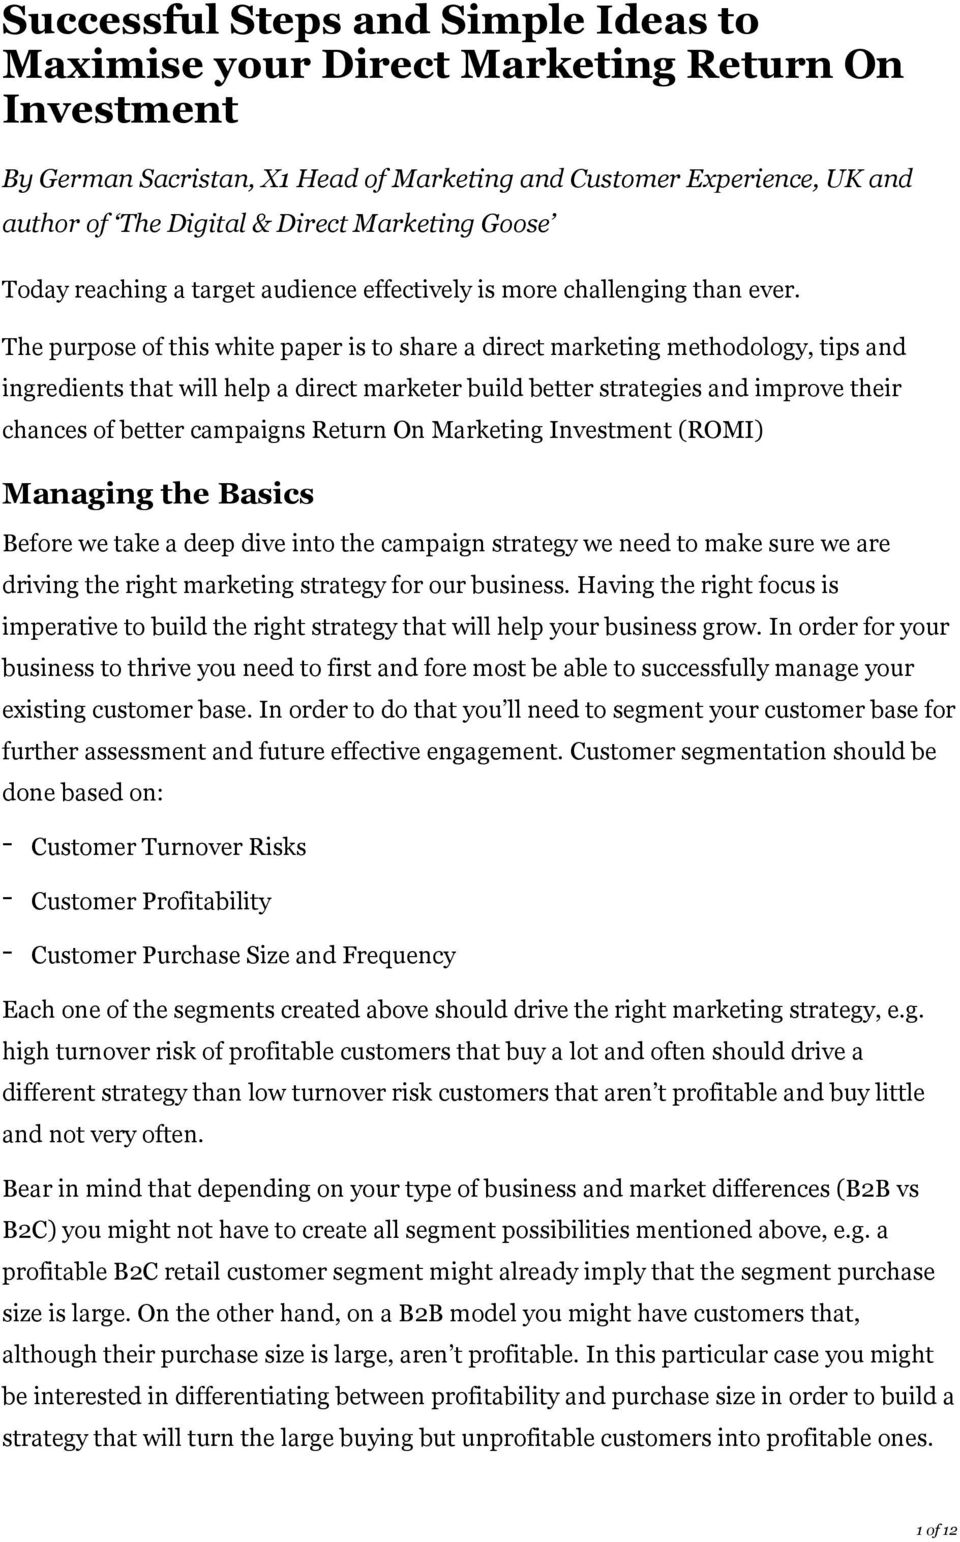 The purpose of this white paper is to share a direct marketing methodology, tips and ingredients that will help a direct marketer build better strategies and improve their chances of better campaigns